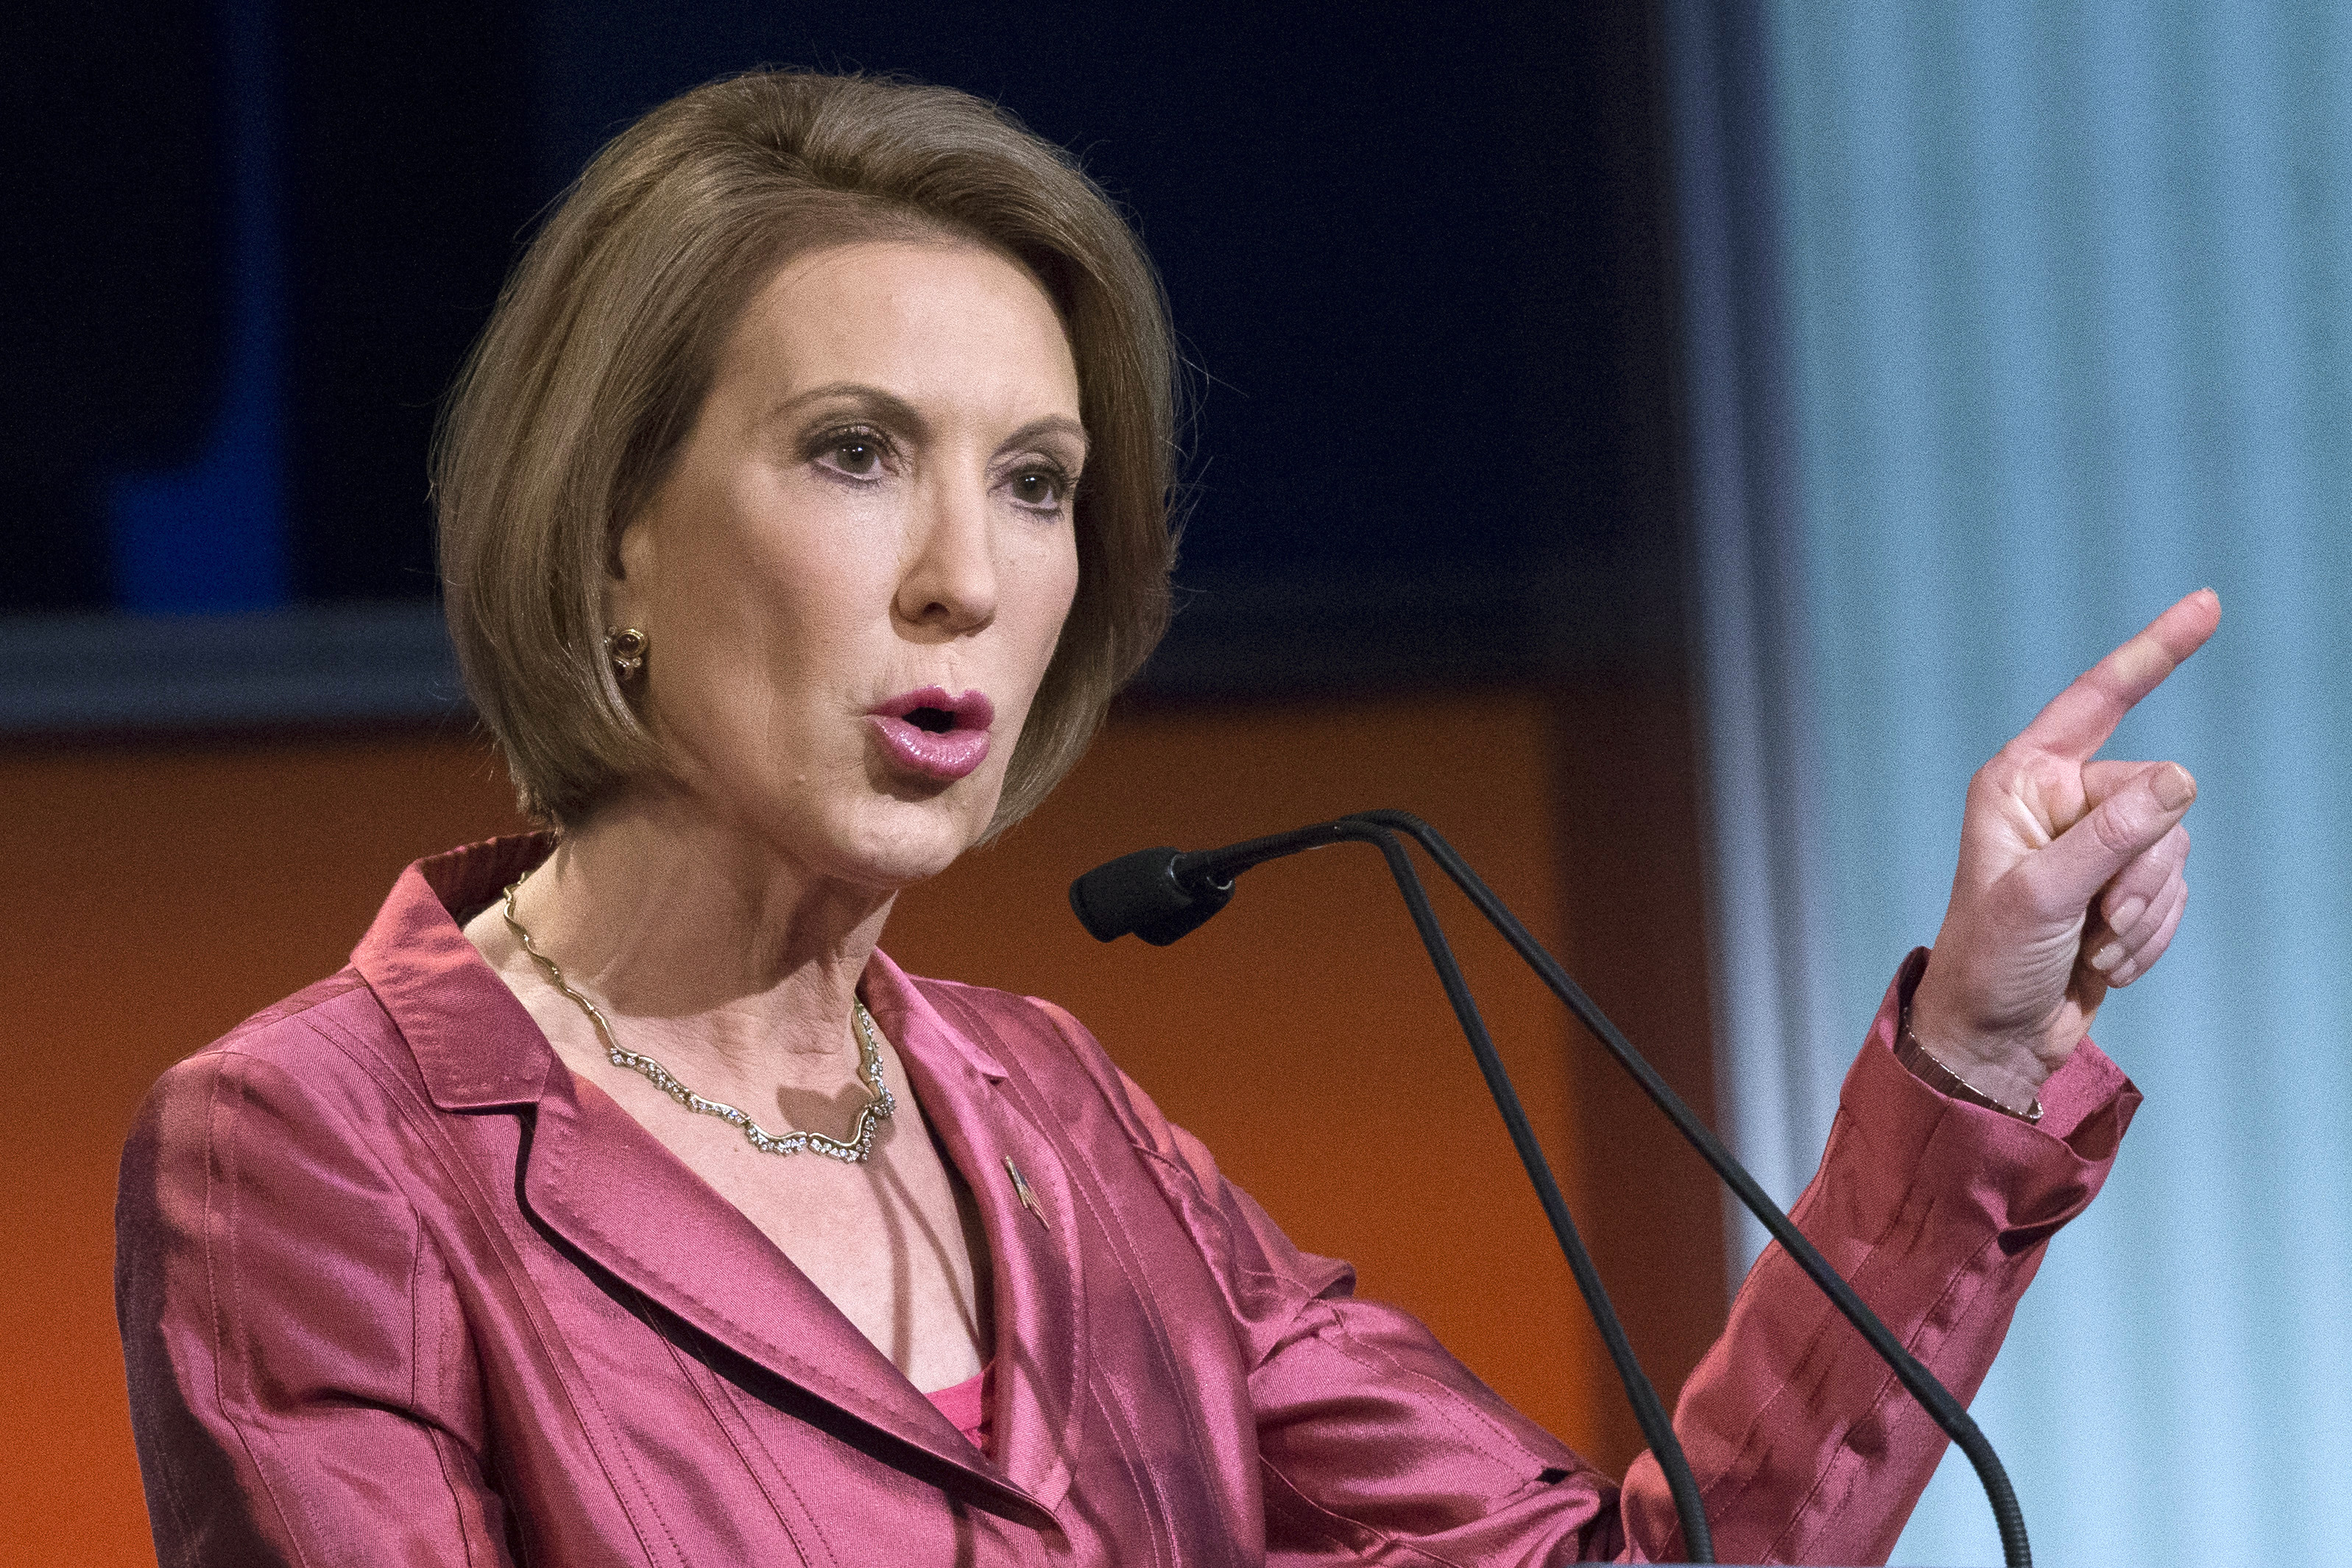 Republican presidential candidate Carly Fiorina speaks during a predebate forum in Cleveland on Aug. 6, 2015